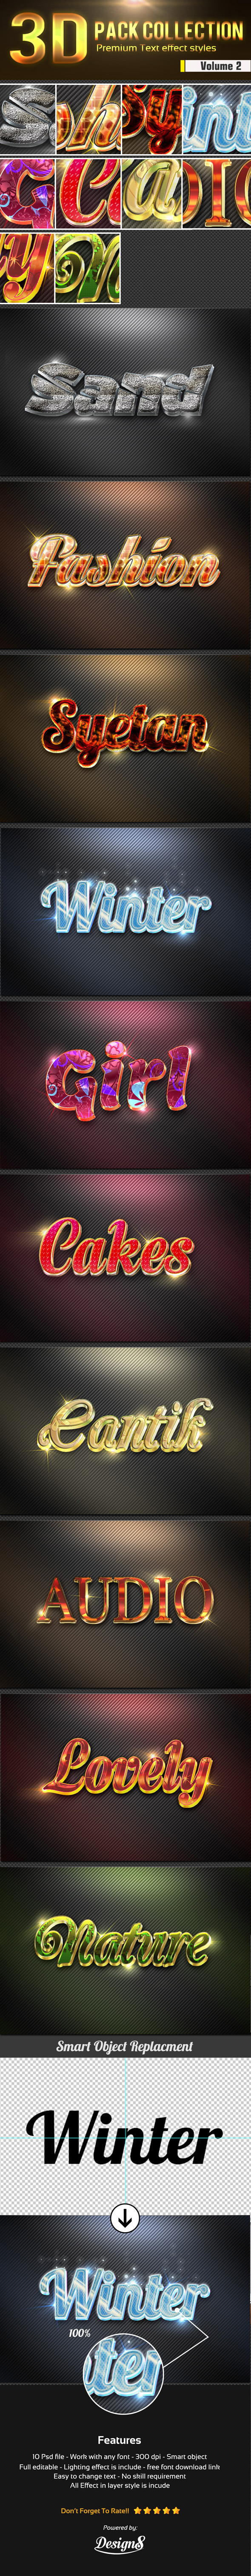 New 3D Photoshop Text Effect Style Vol 2 - Text Effects Styles